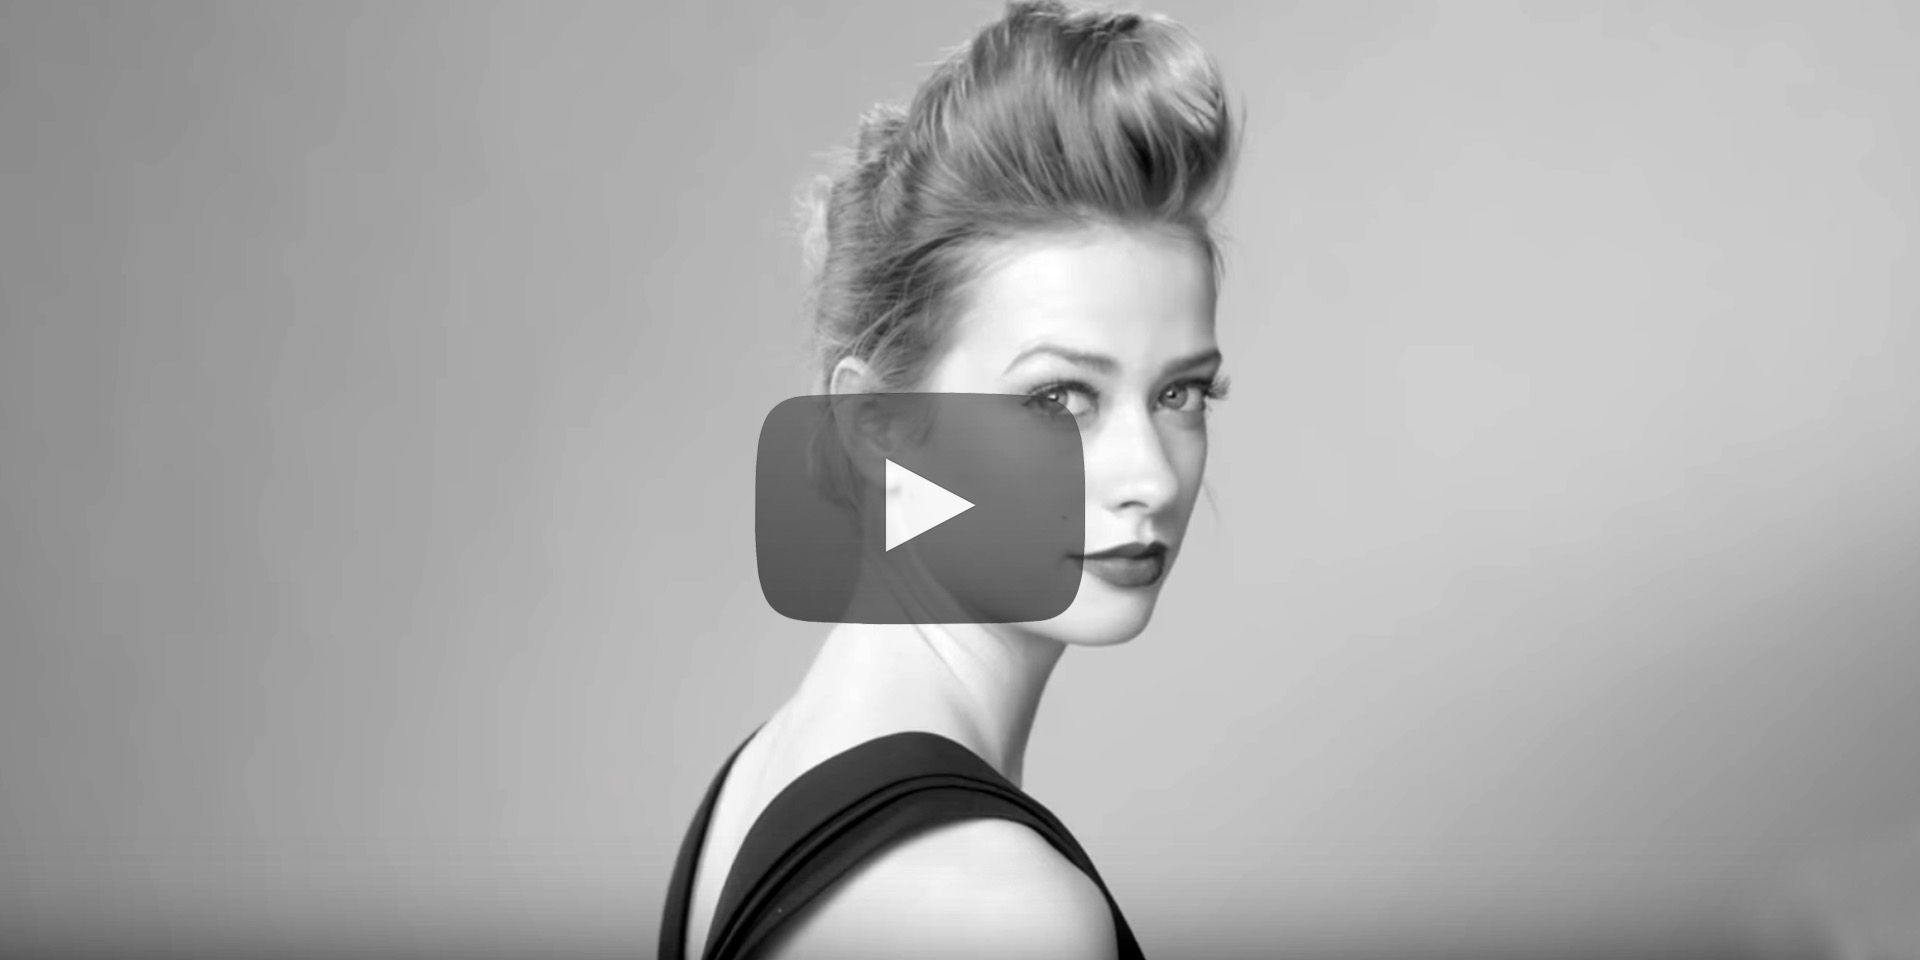 How to Put an Edgy Spin on the Classic Pompadour - Pompadour ...